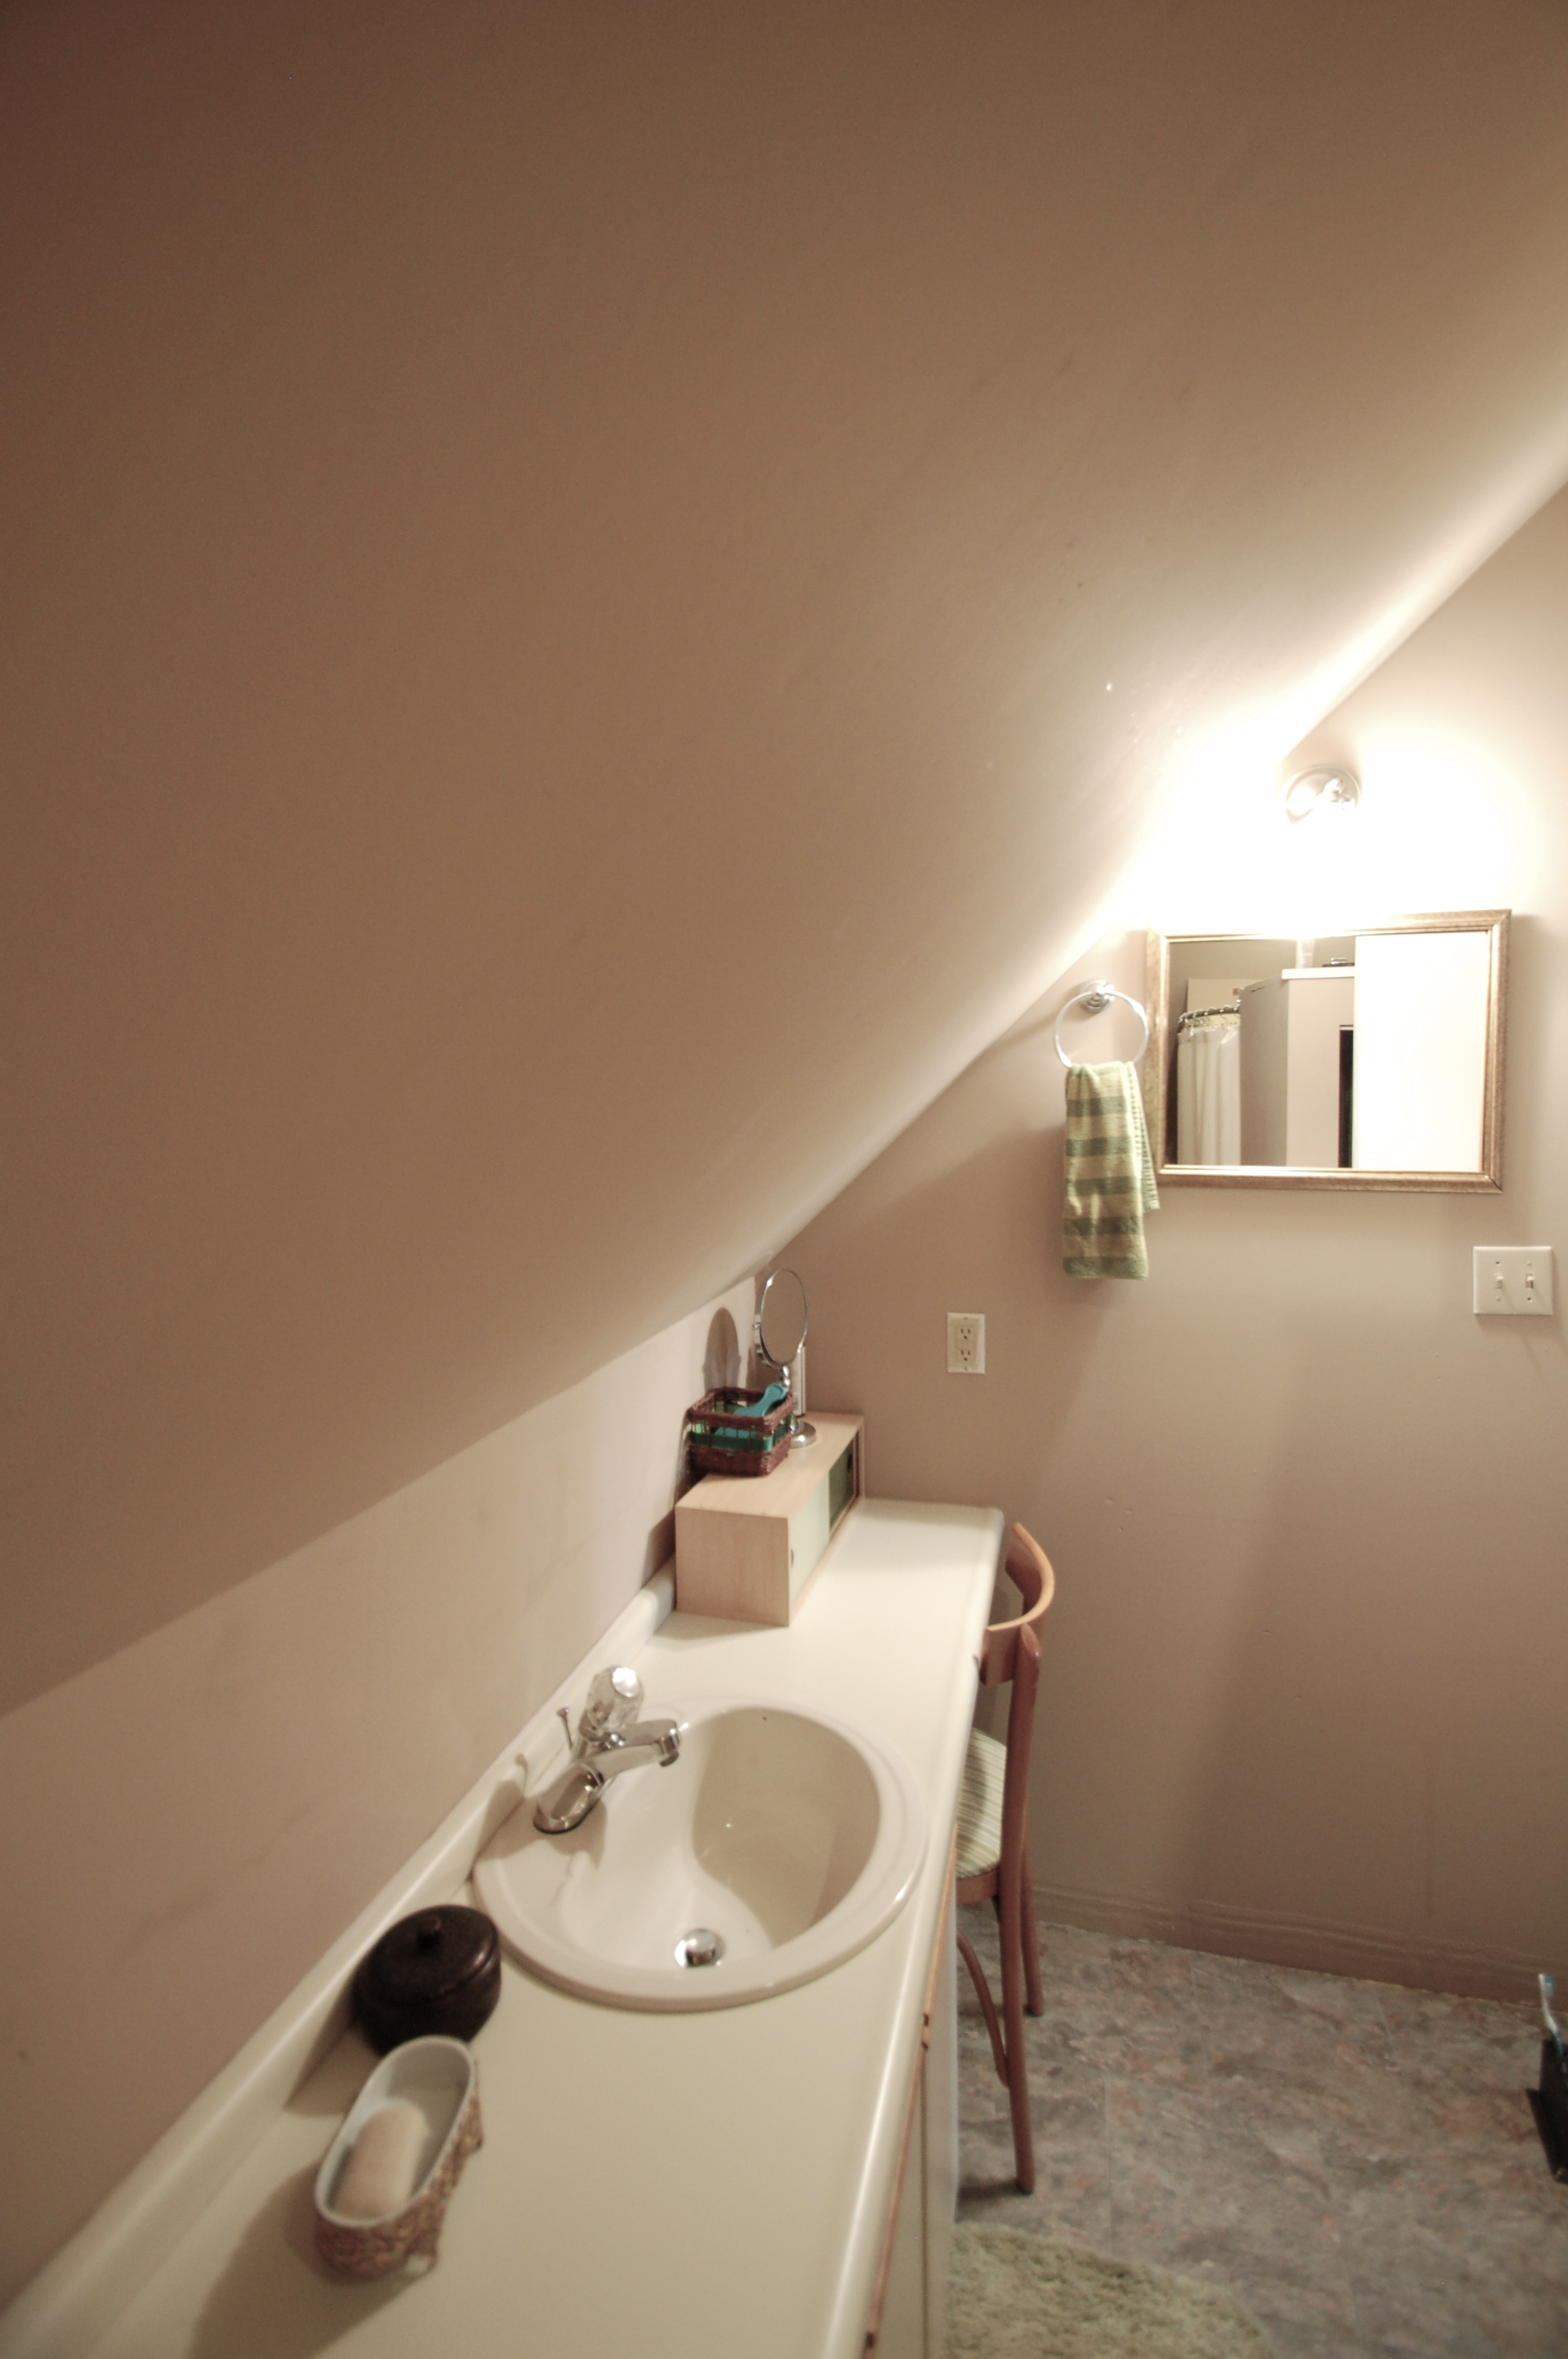 The Martin Place Bathrooms Where We Are Now Vivacious Victorian - Tremain bathroom remodeling